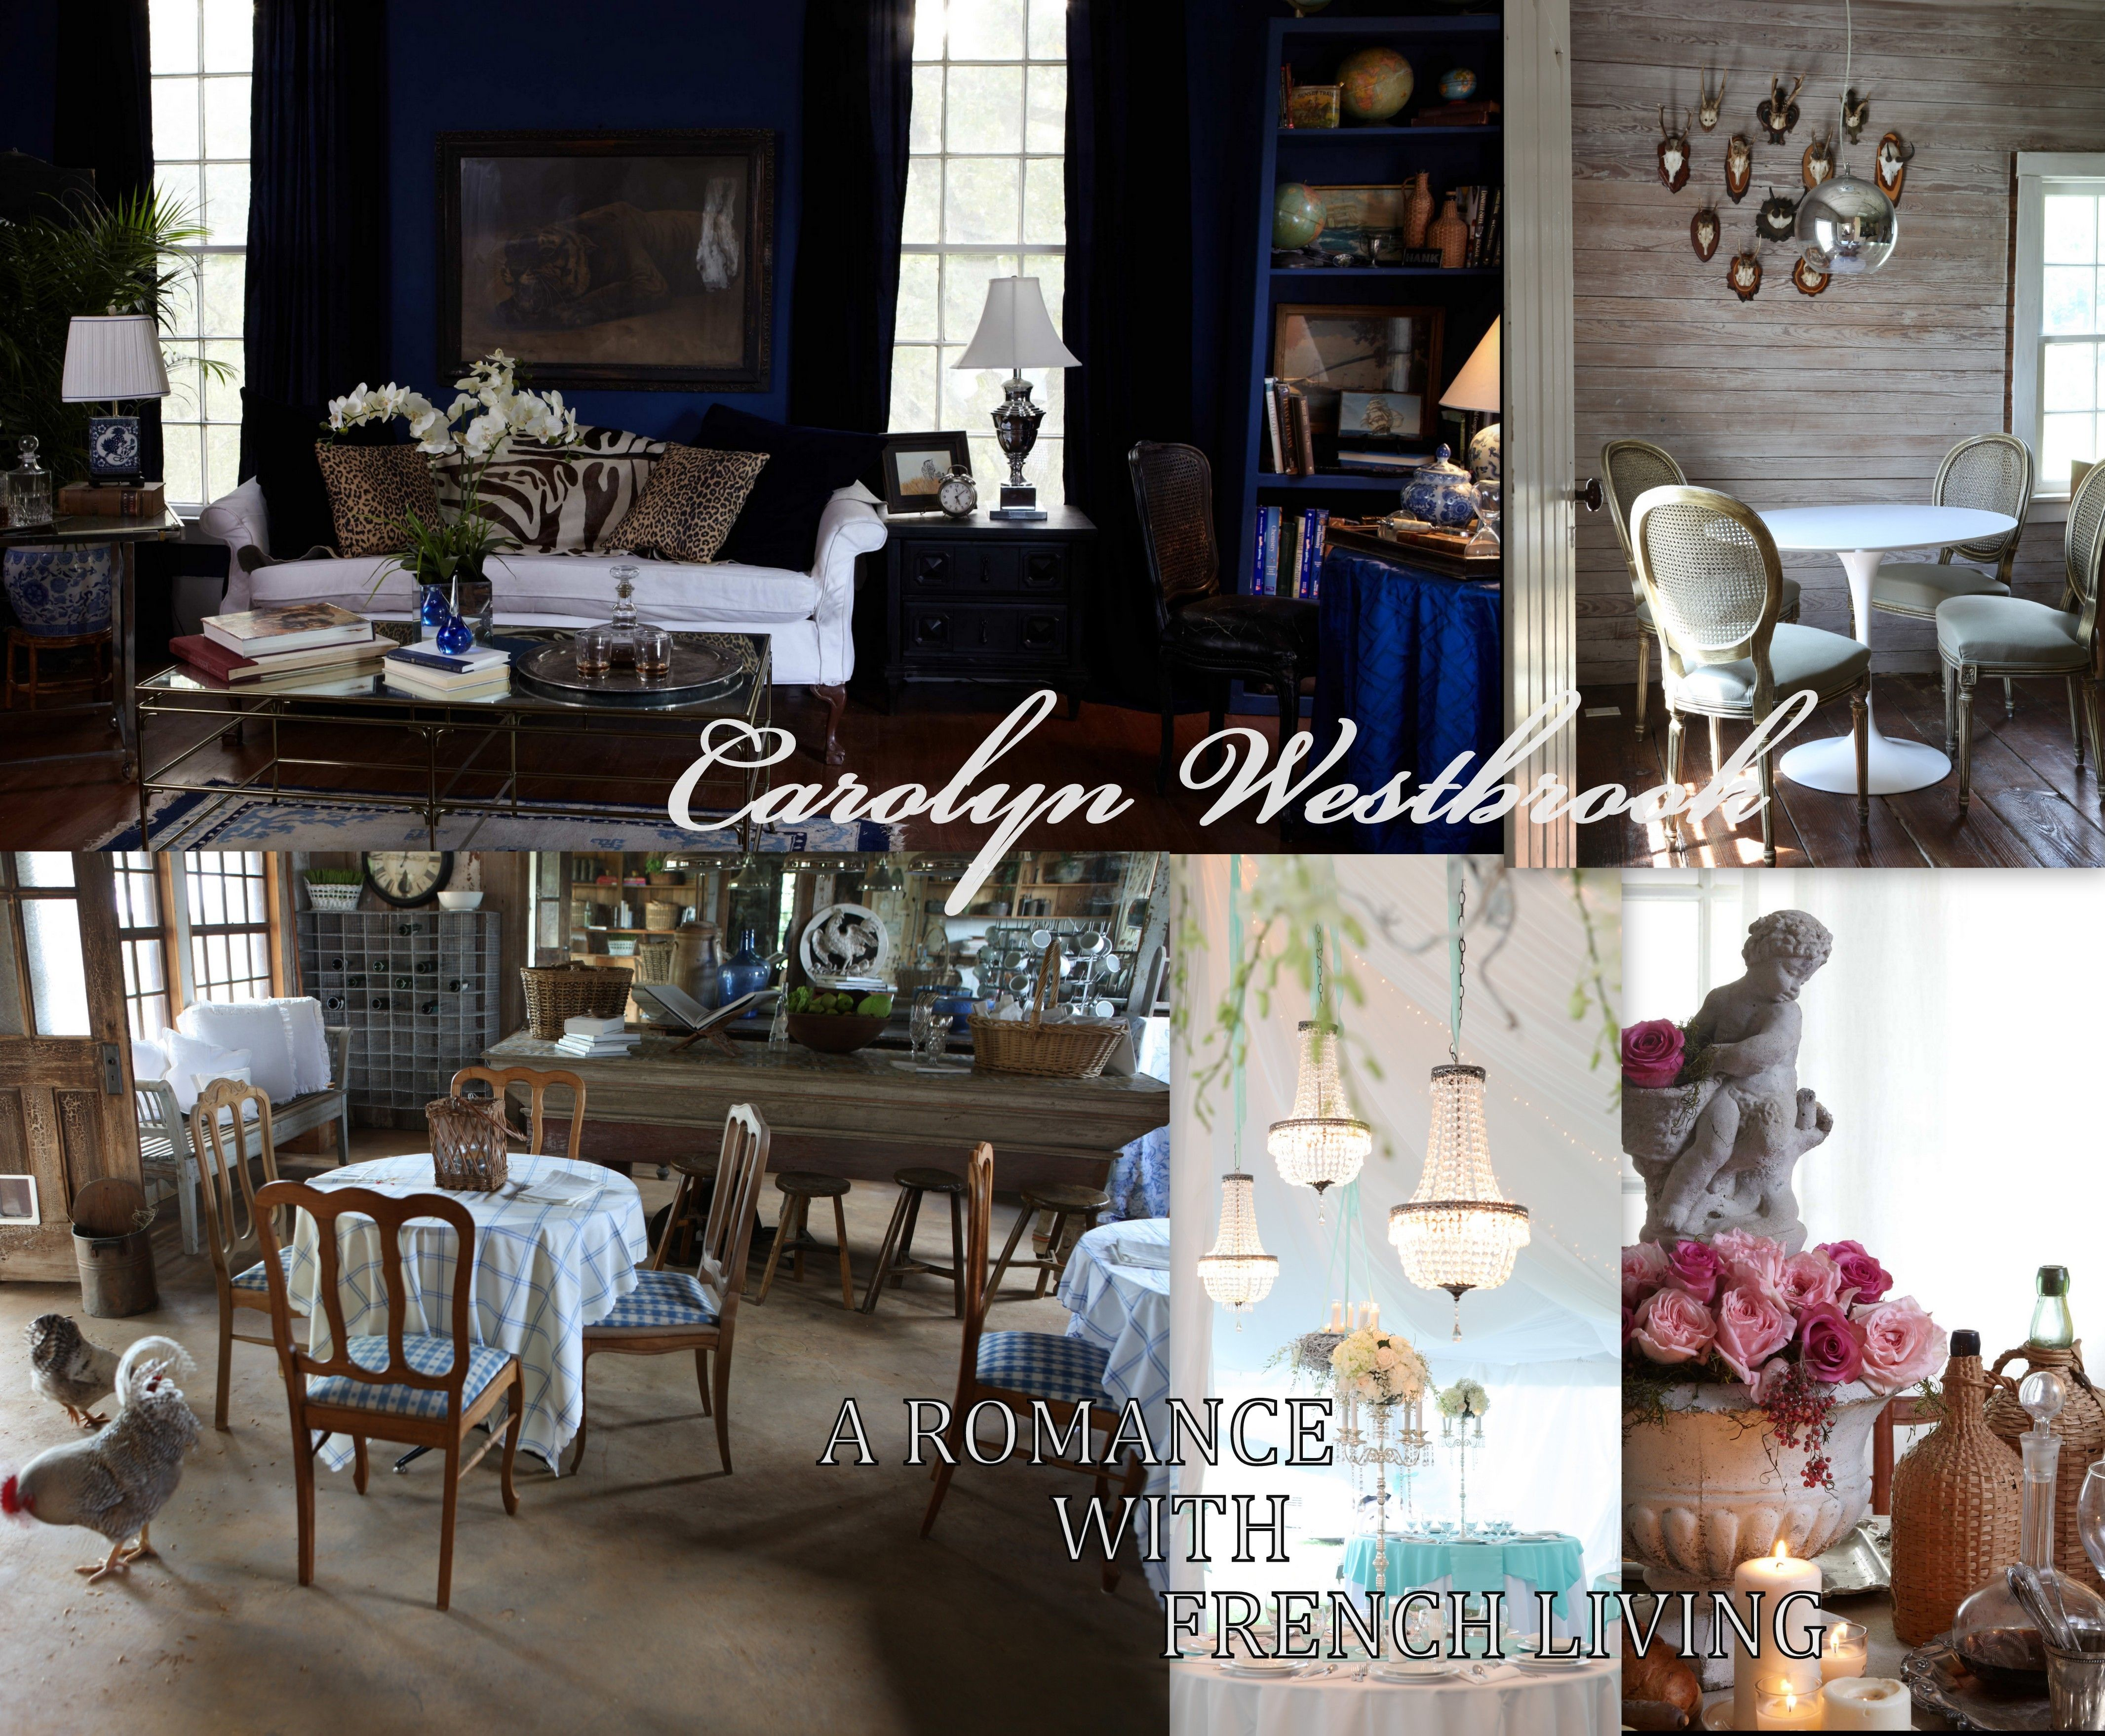 some photos from the new book carolyn westbrook a romance with some photos from the new book carolyn westbrook a romance with french living available